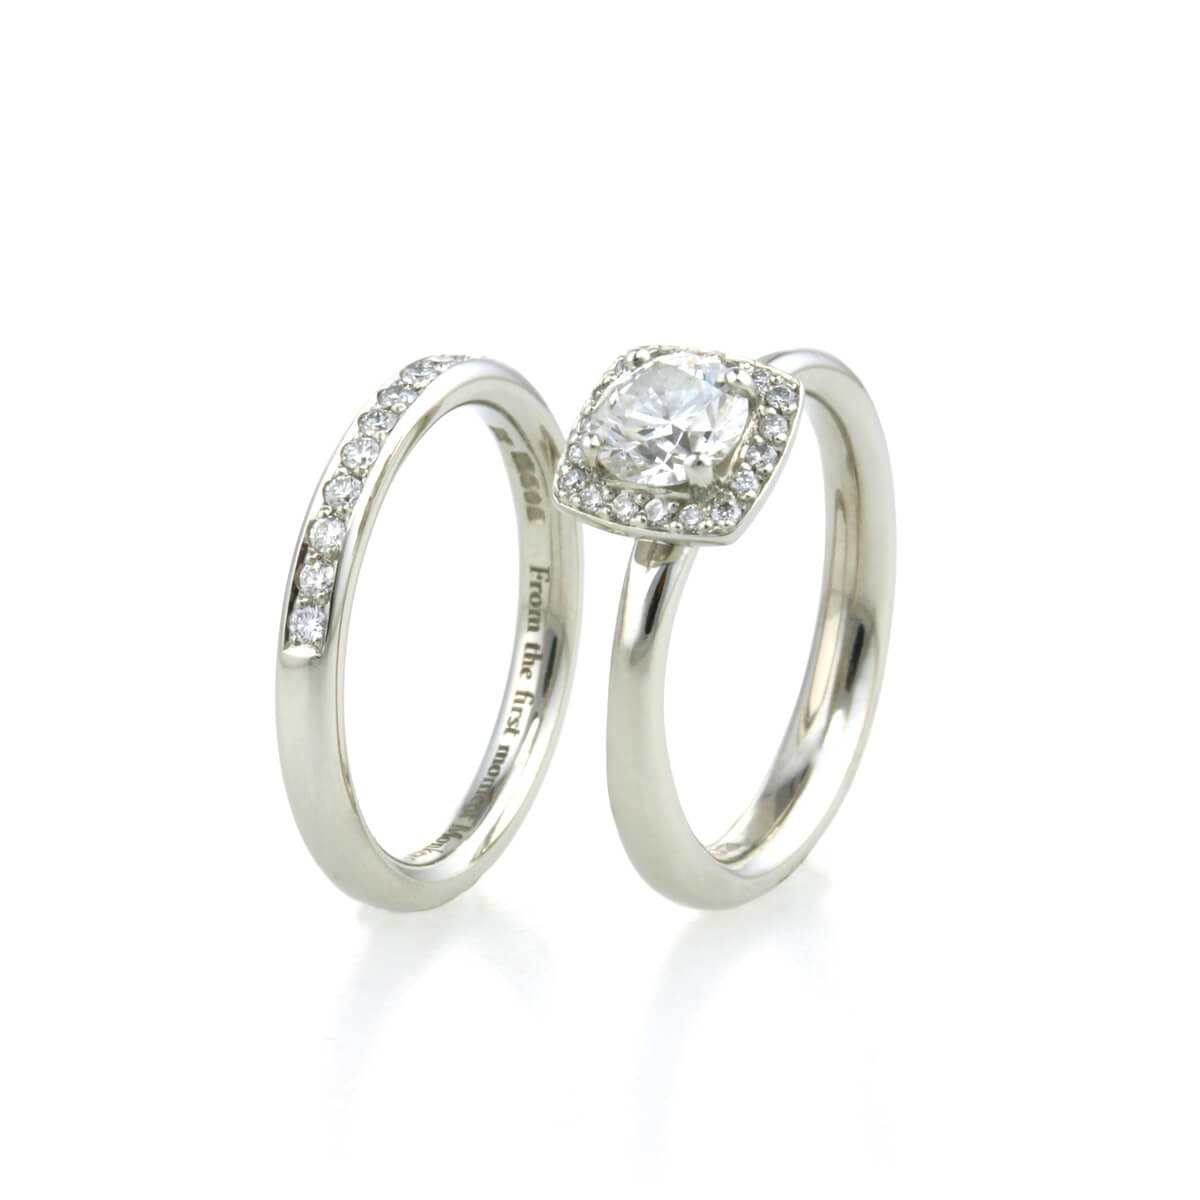 platinum halo diamond and wedding ring 2 (2)